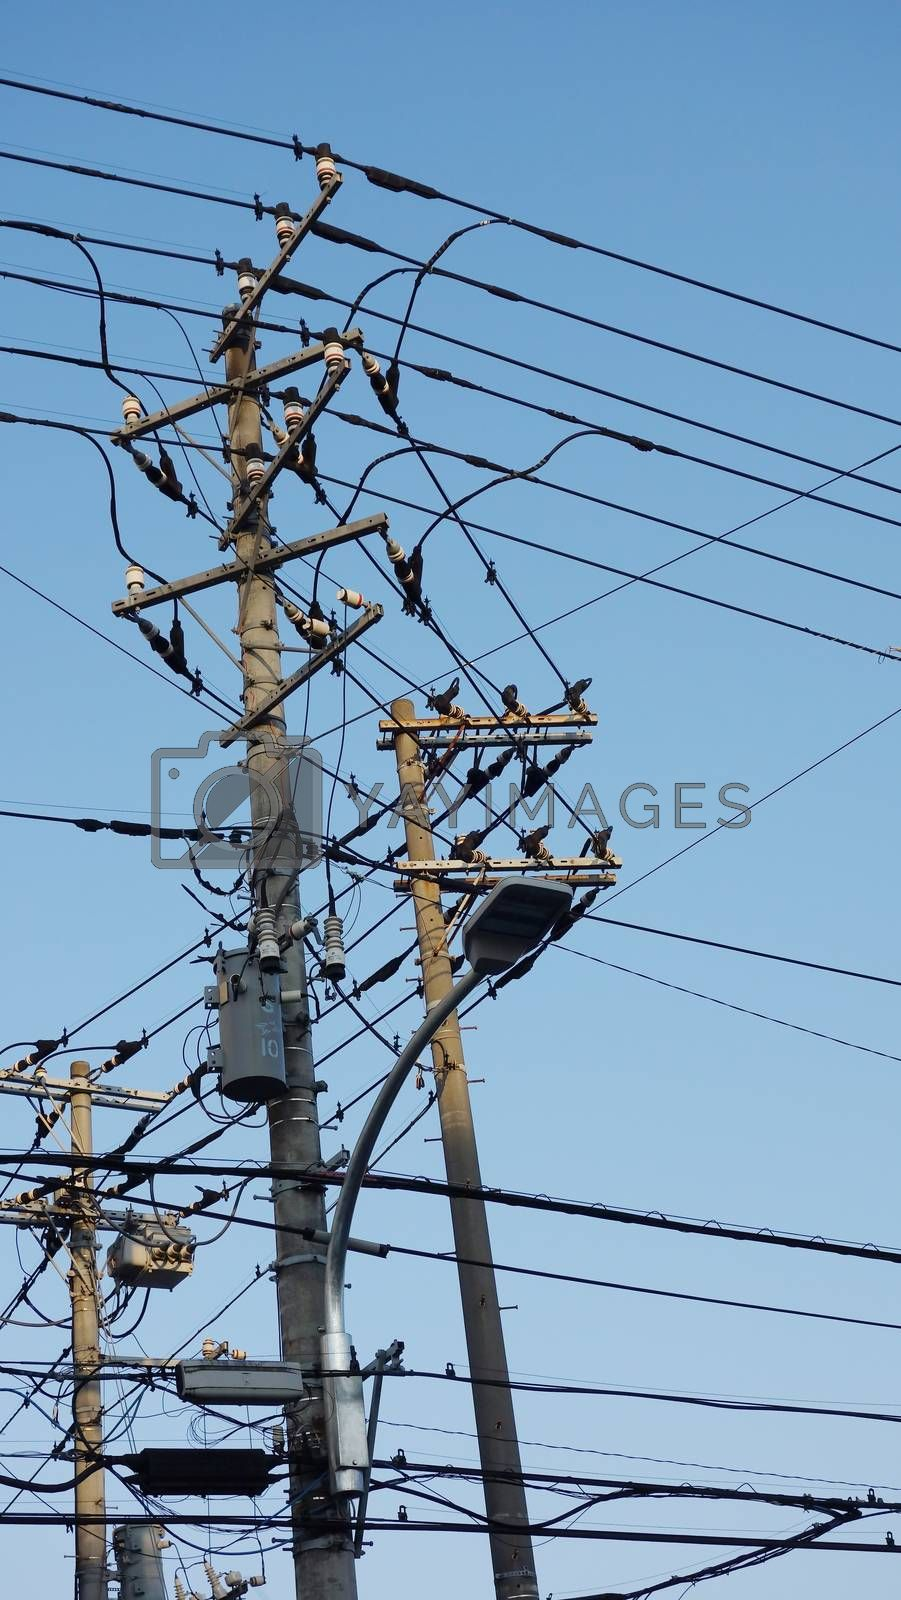 electric pole in Japan with blue sky background. Electricity Power Supply  transfer energy electrical tecnology on cable wire. Equipment for power lines on the electric pole.